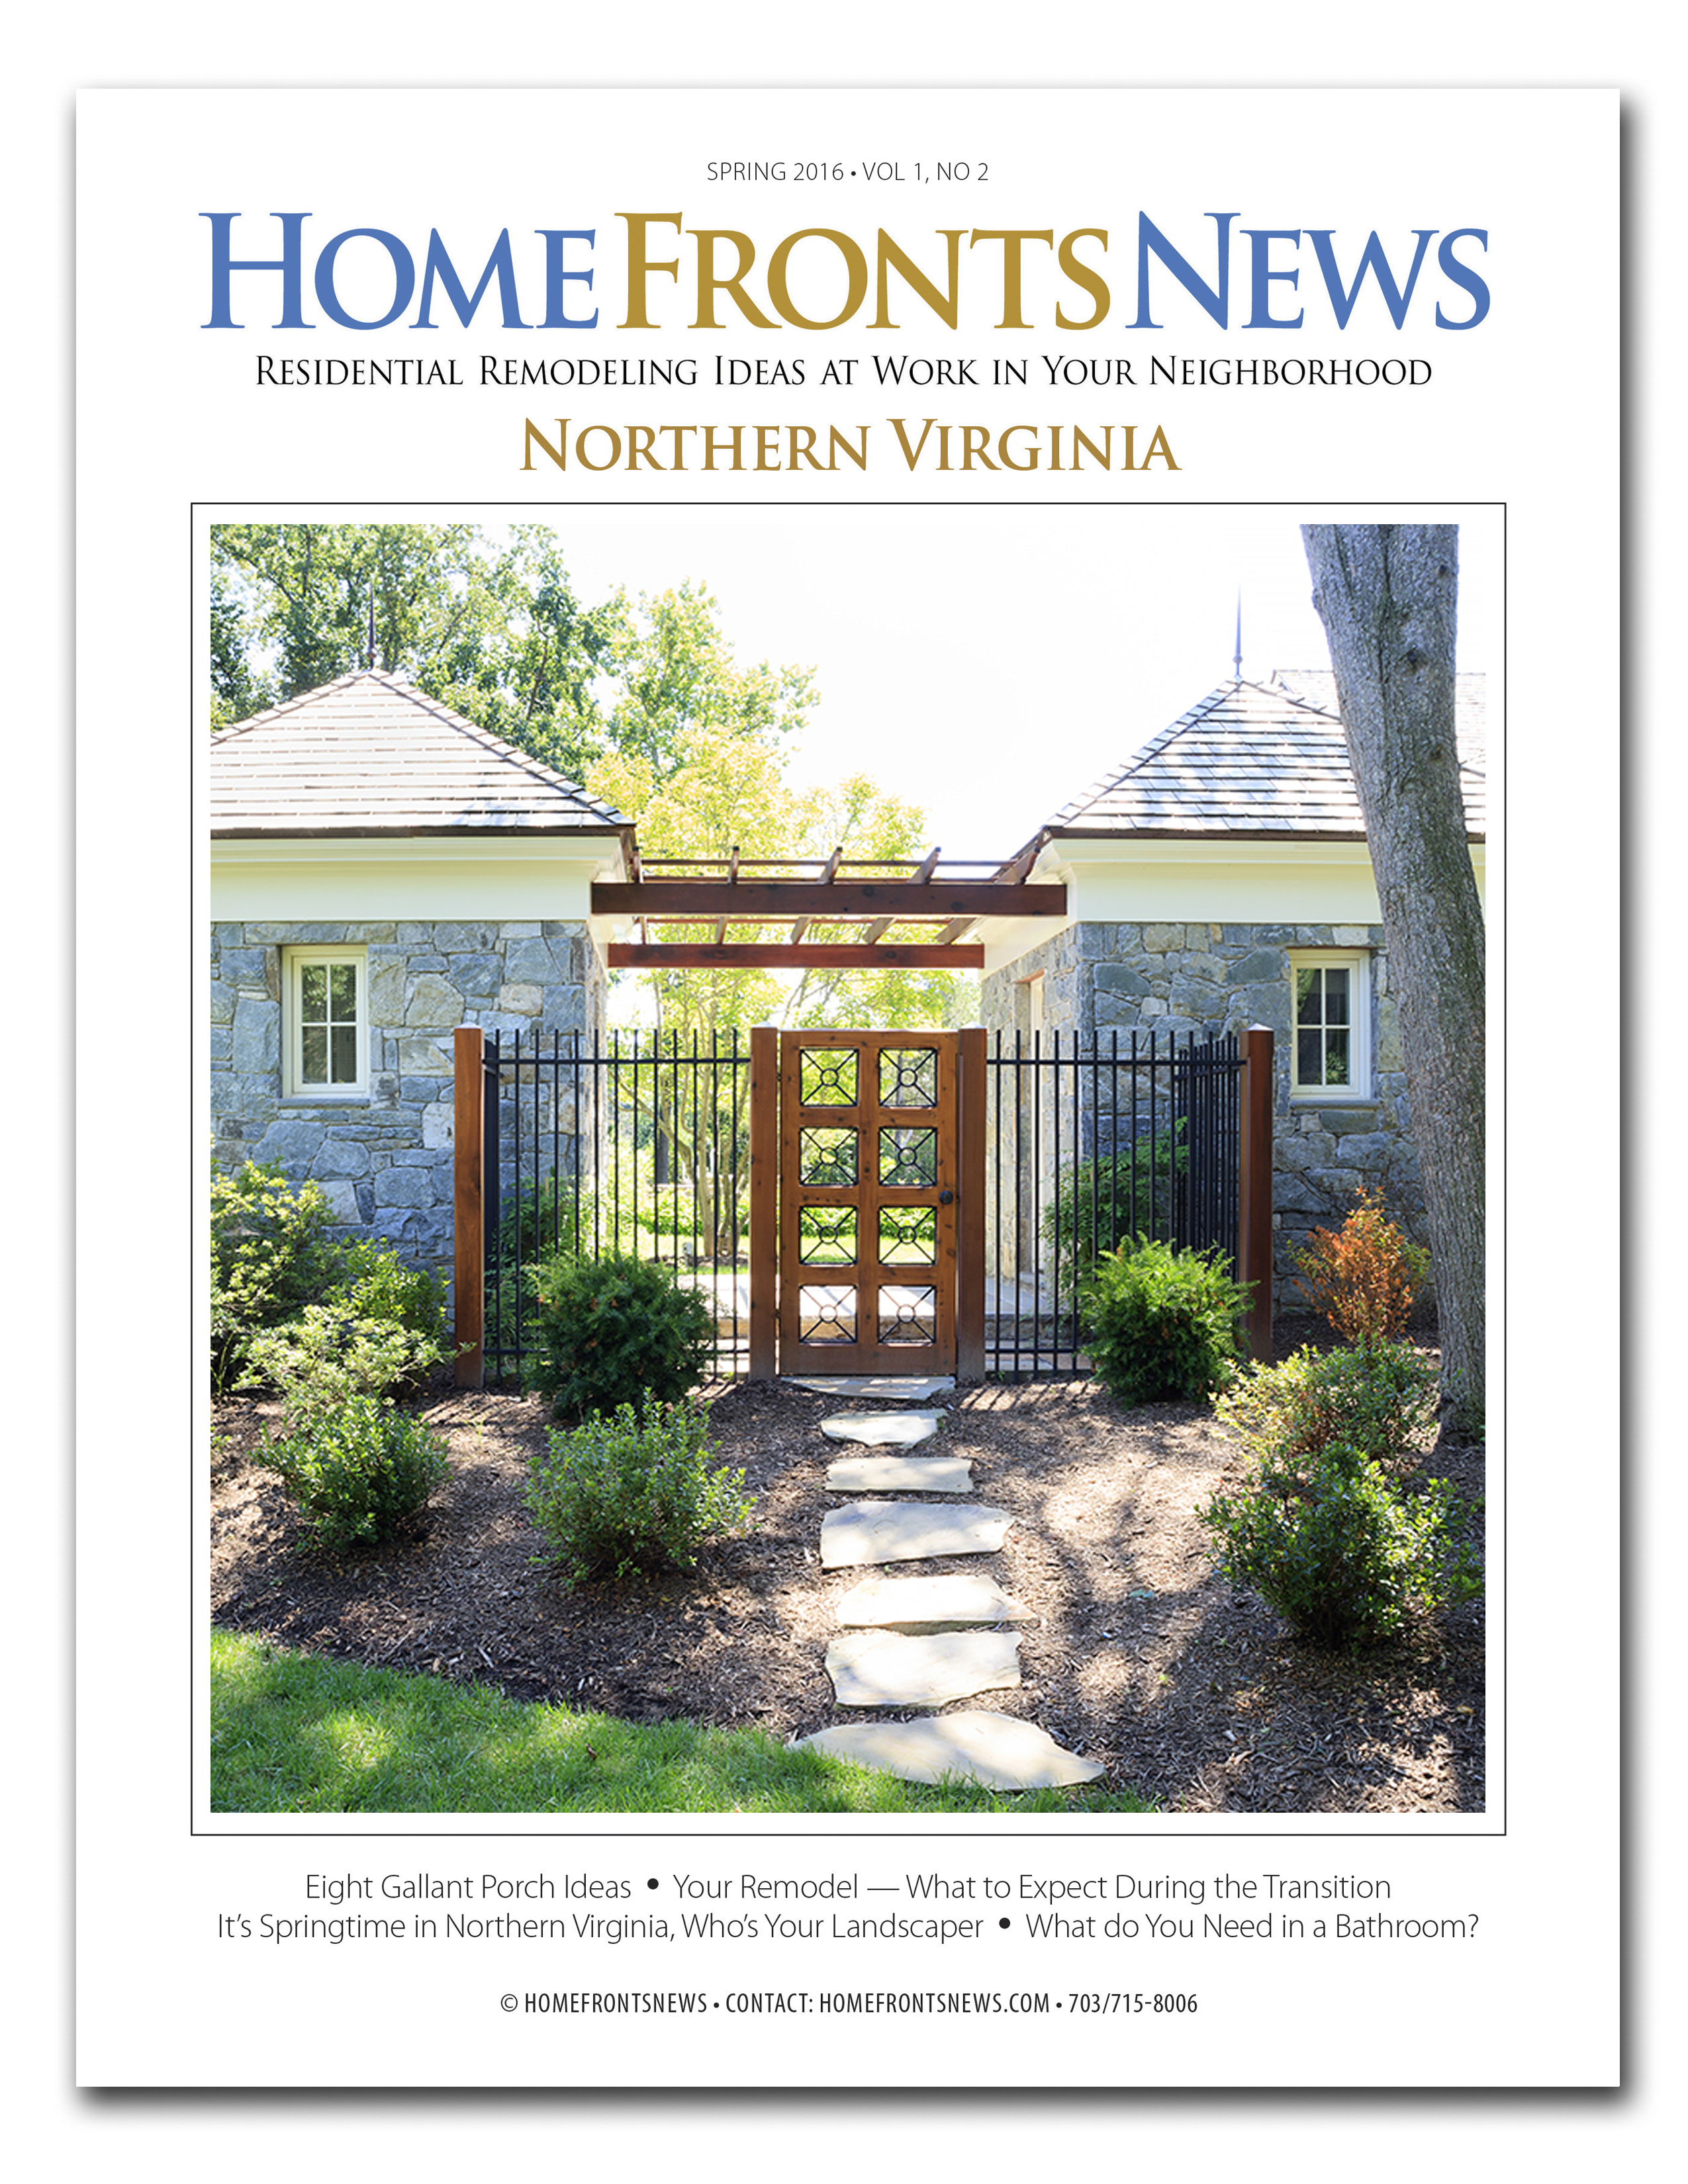 Home Fronts News Spring 2016